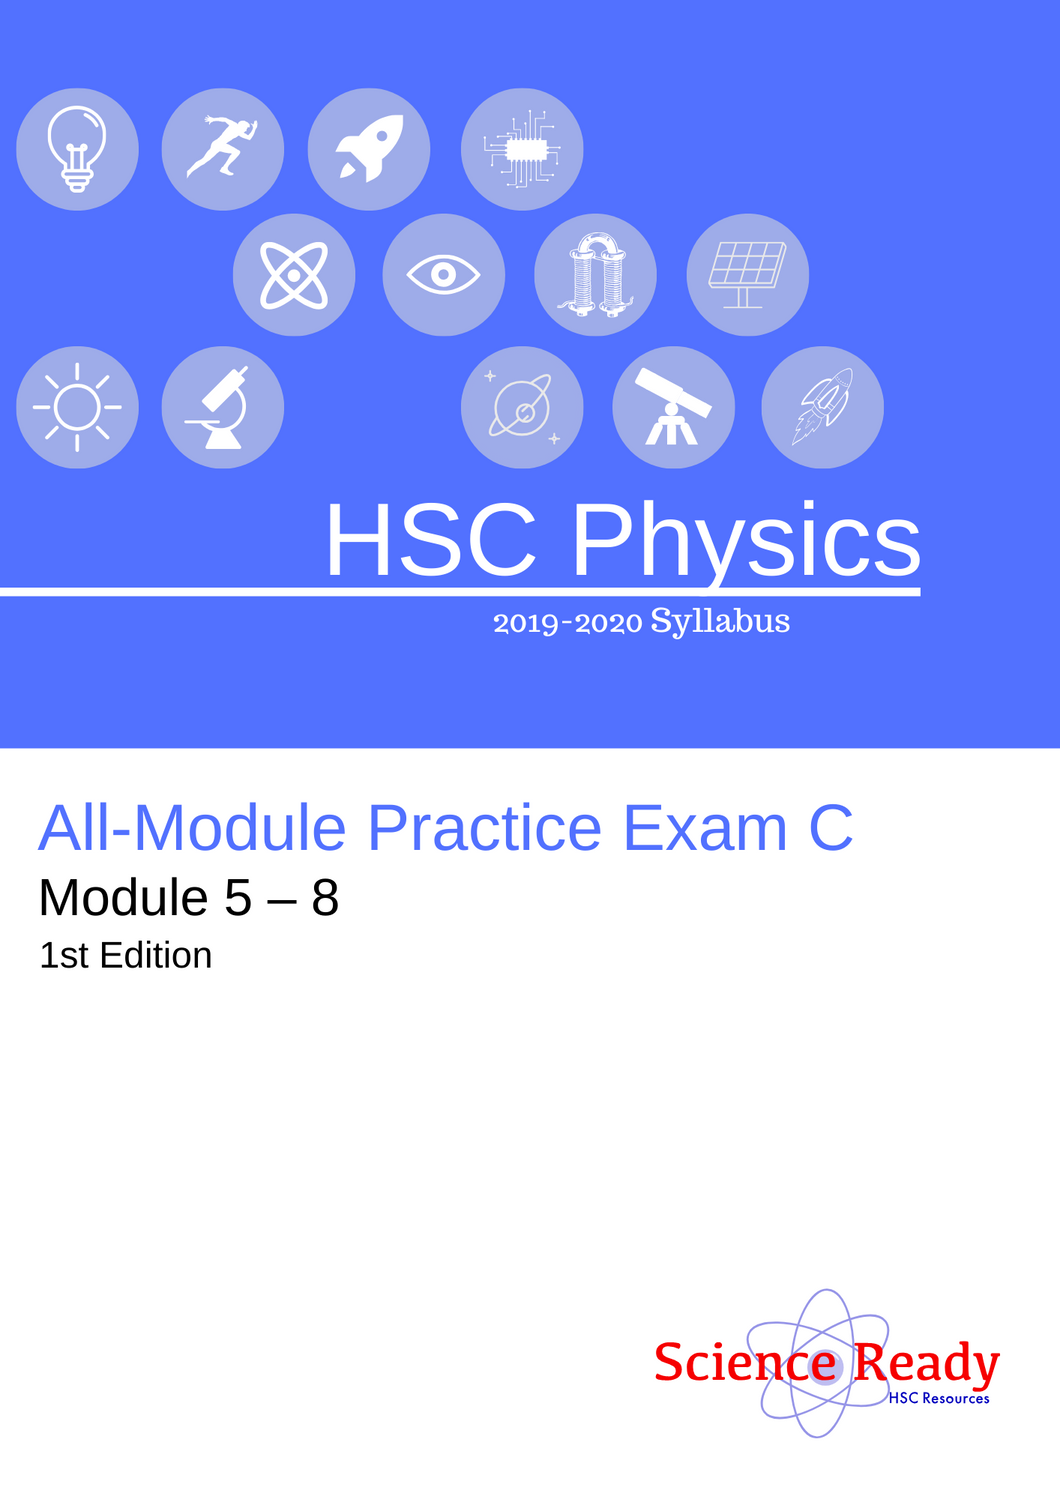 HSC Physics All-Module Practice Exam C